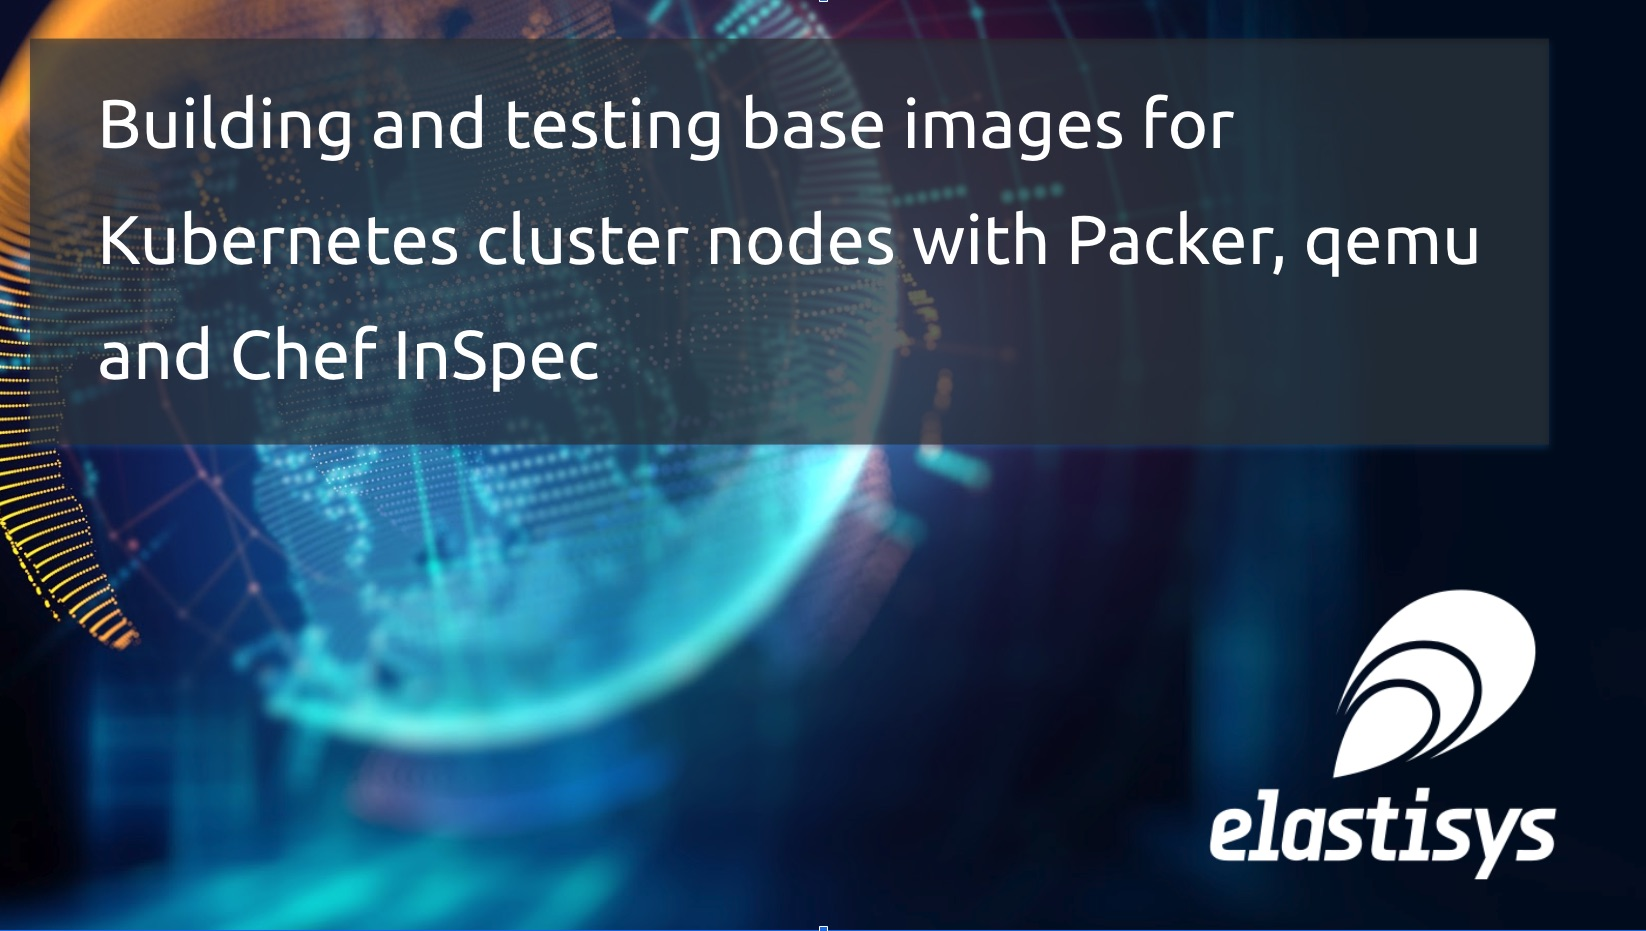 Building and testing base images for Kubernetes cluster nodes with Packer, qemu and Chef InSpec